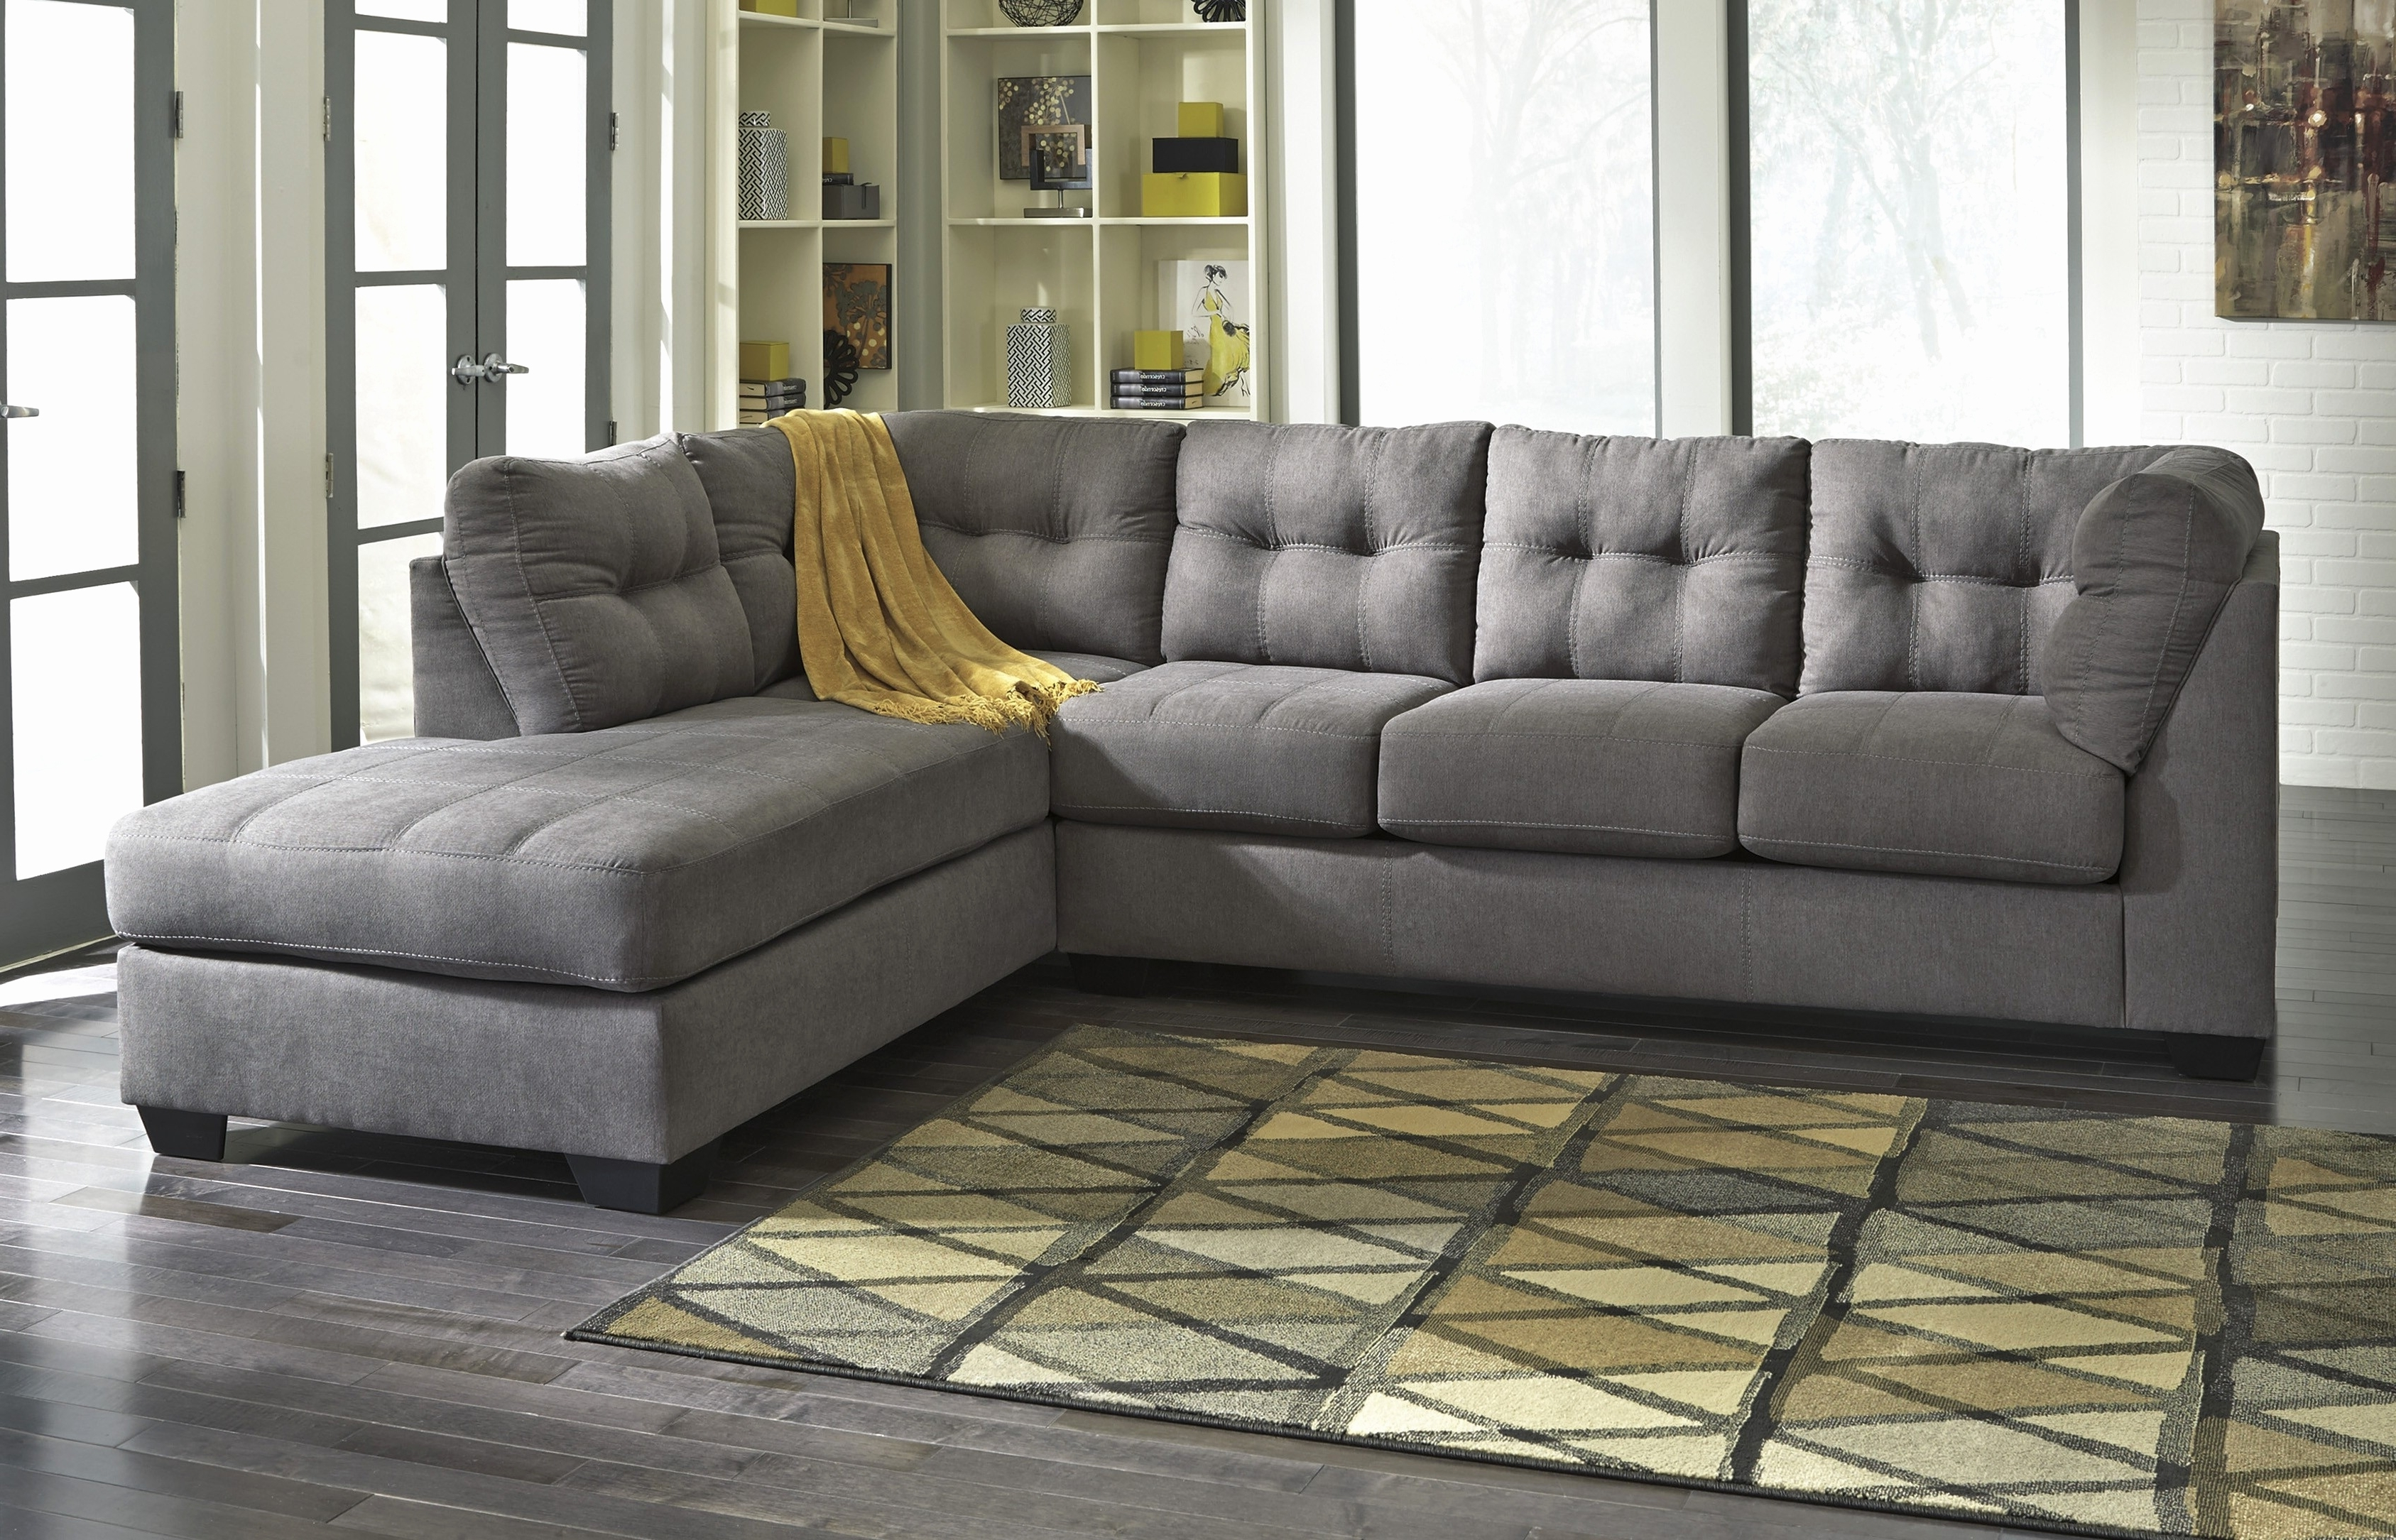 Trendy Sectional Sofas At Ashley Pertaining To Unique Sectional Sleeper Sofa Ashley 2018 – Couches And Sofas Ideas (View 15 of 15)